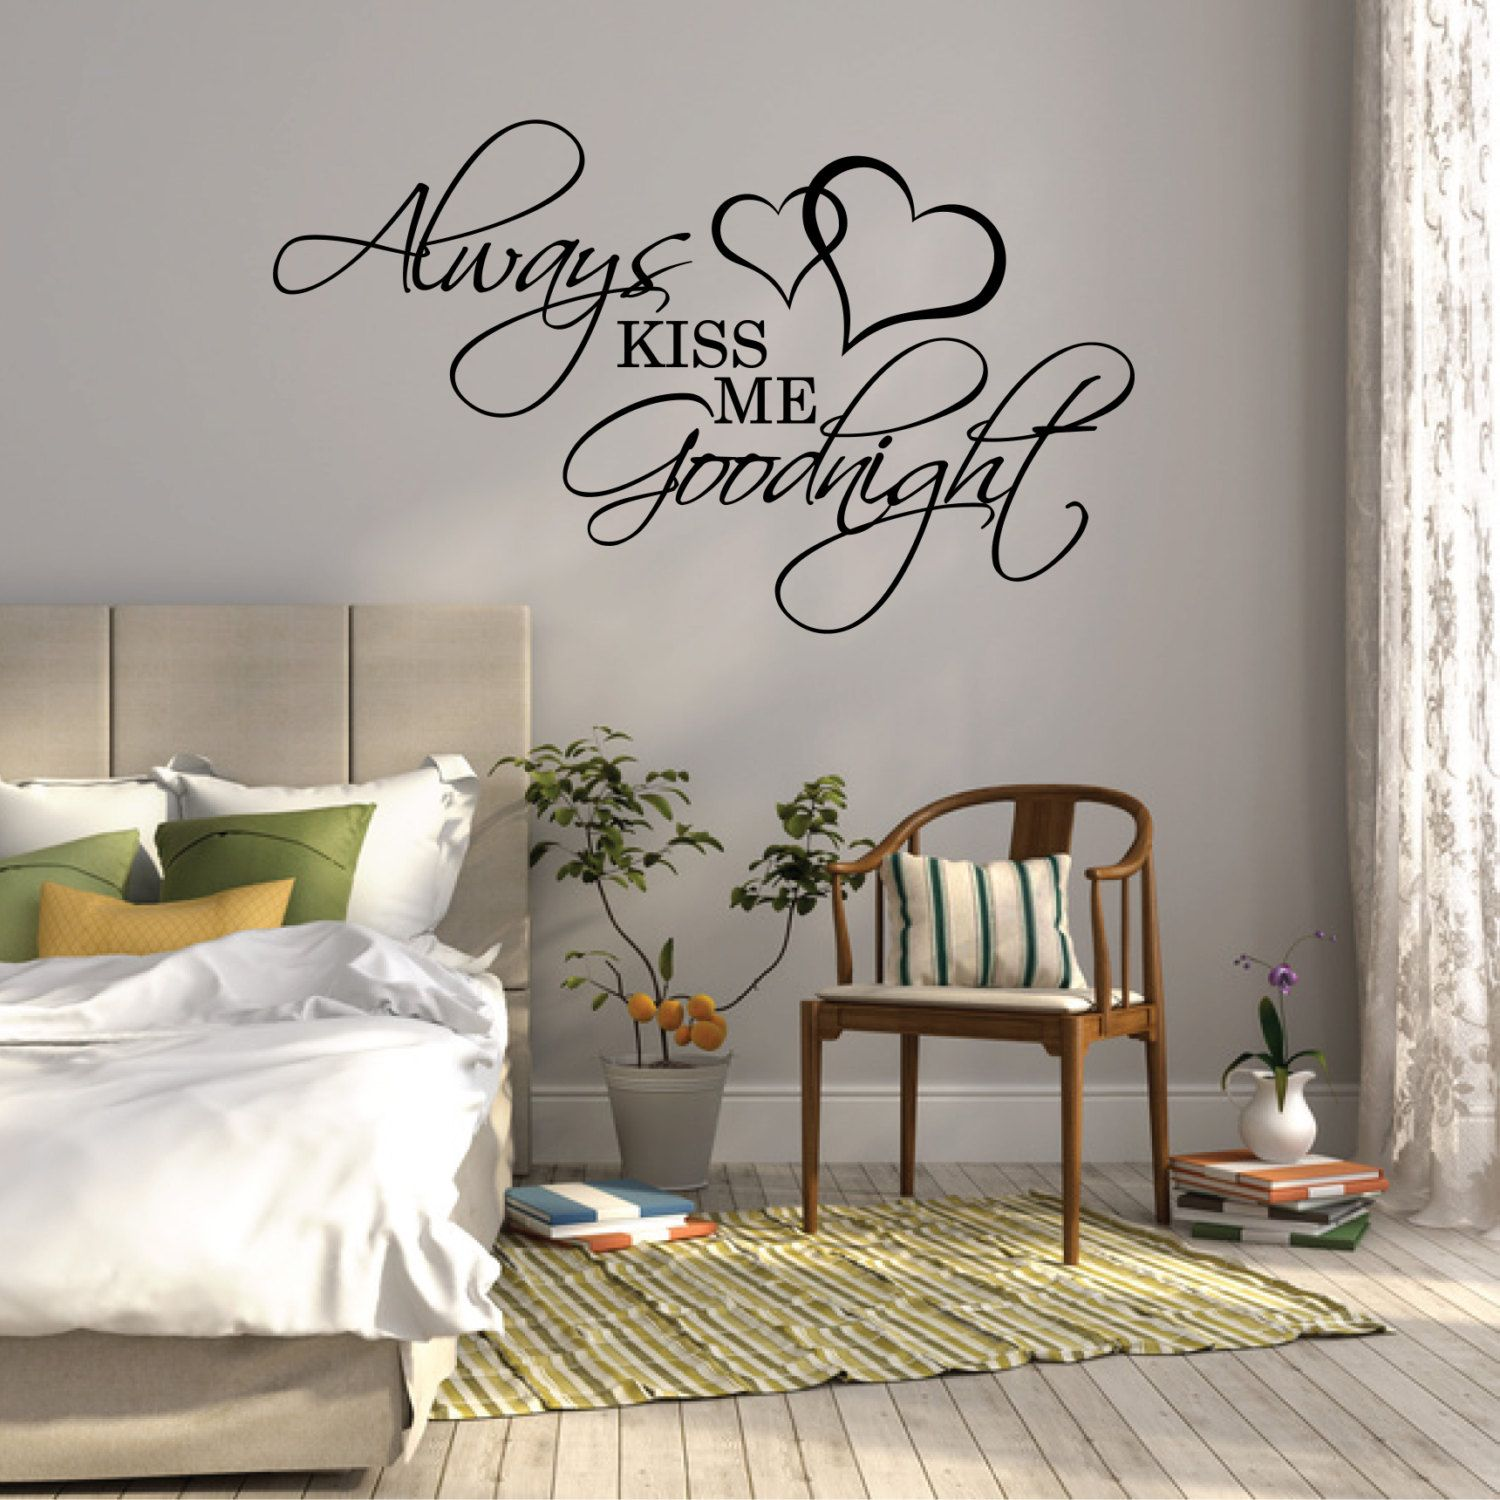 Wall Sticker Quote  Always KISS ME Goodnight | Over Bed Wall Decor |  Bedroom Wall